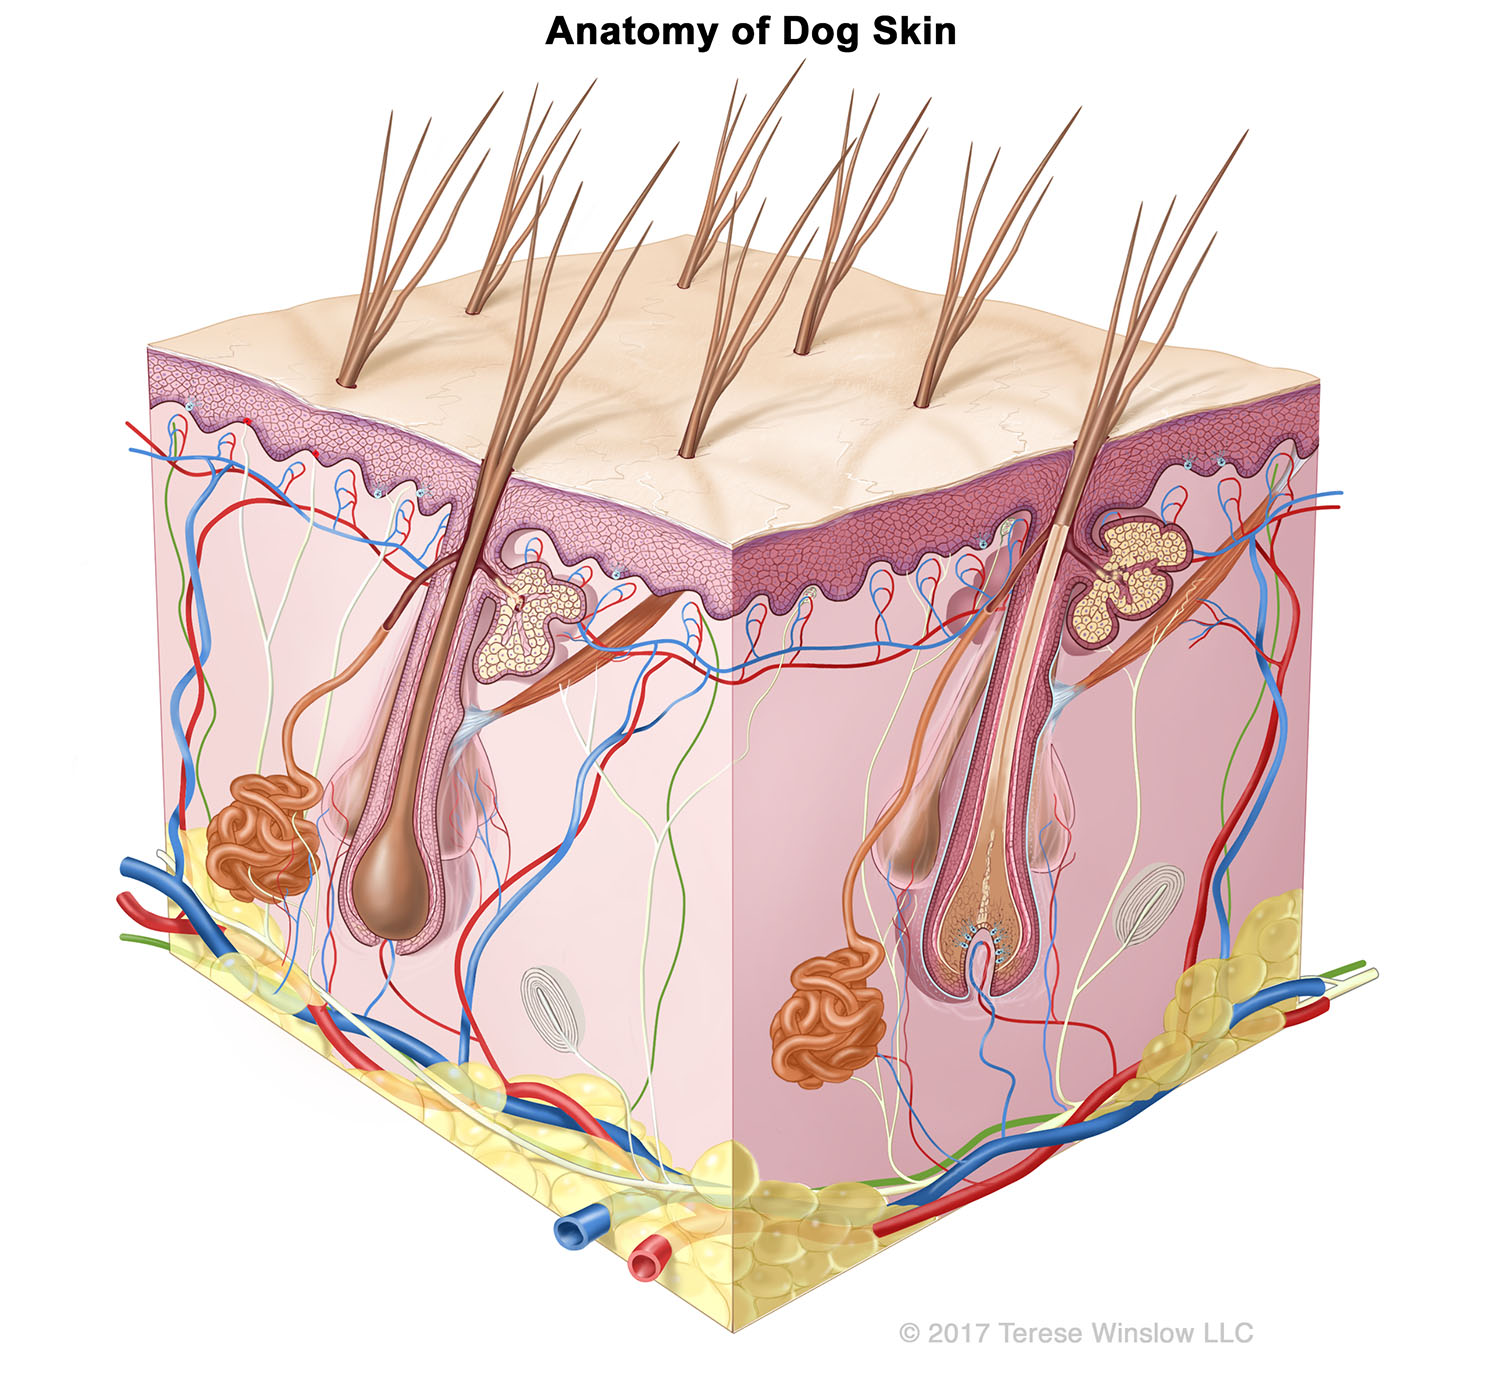 Skin Terese Winslow Llc Medical And Scientific Illustration